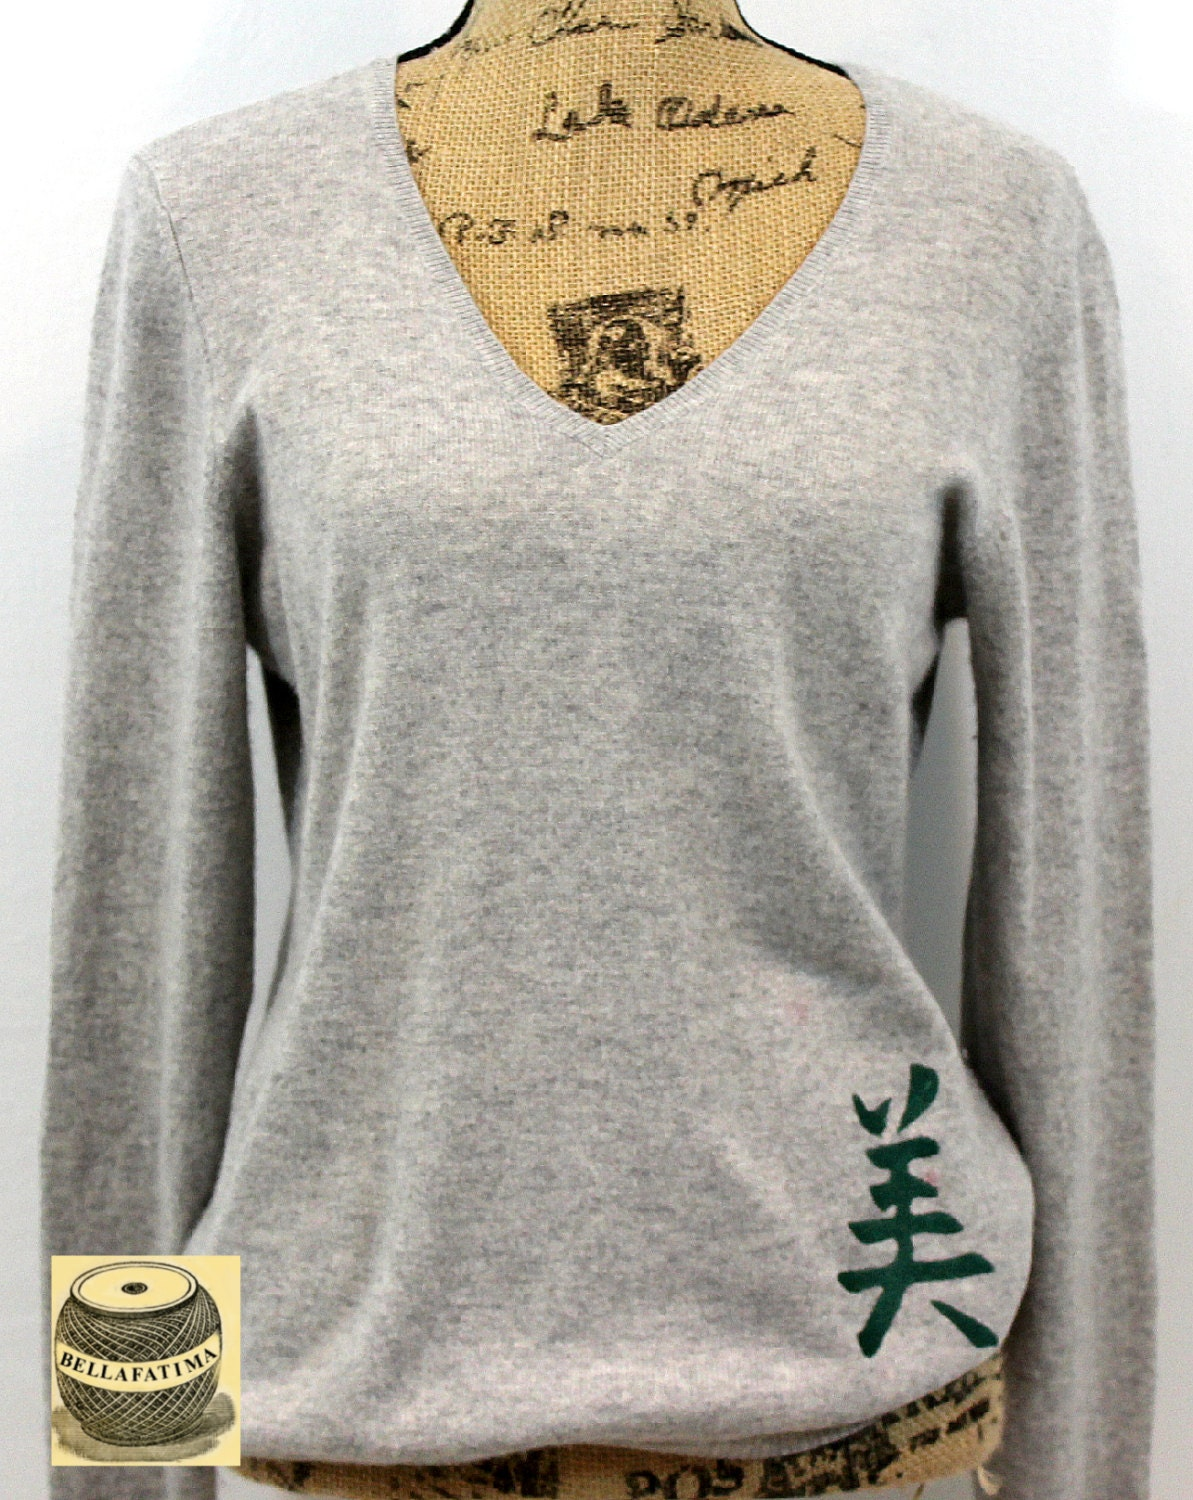 Chinese symbol for you images symbol and sign ideas light gray cashmere v neck embroidered with chinese symbol for request a custom order and have buycottarizona